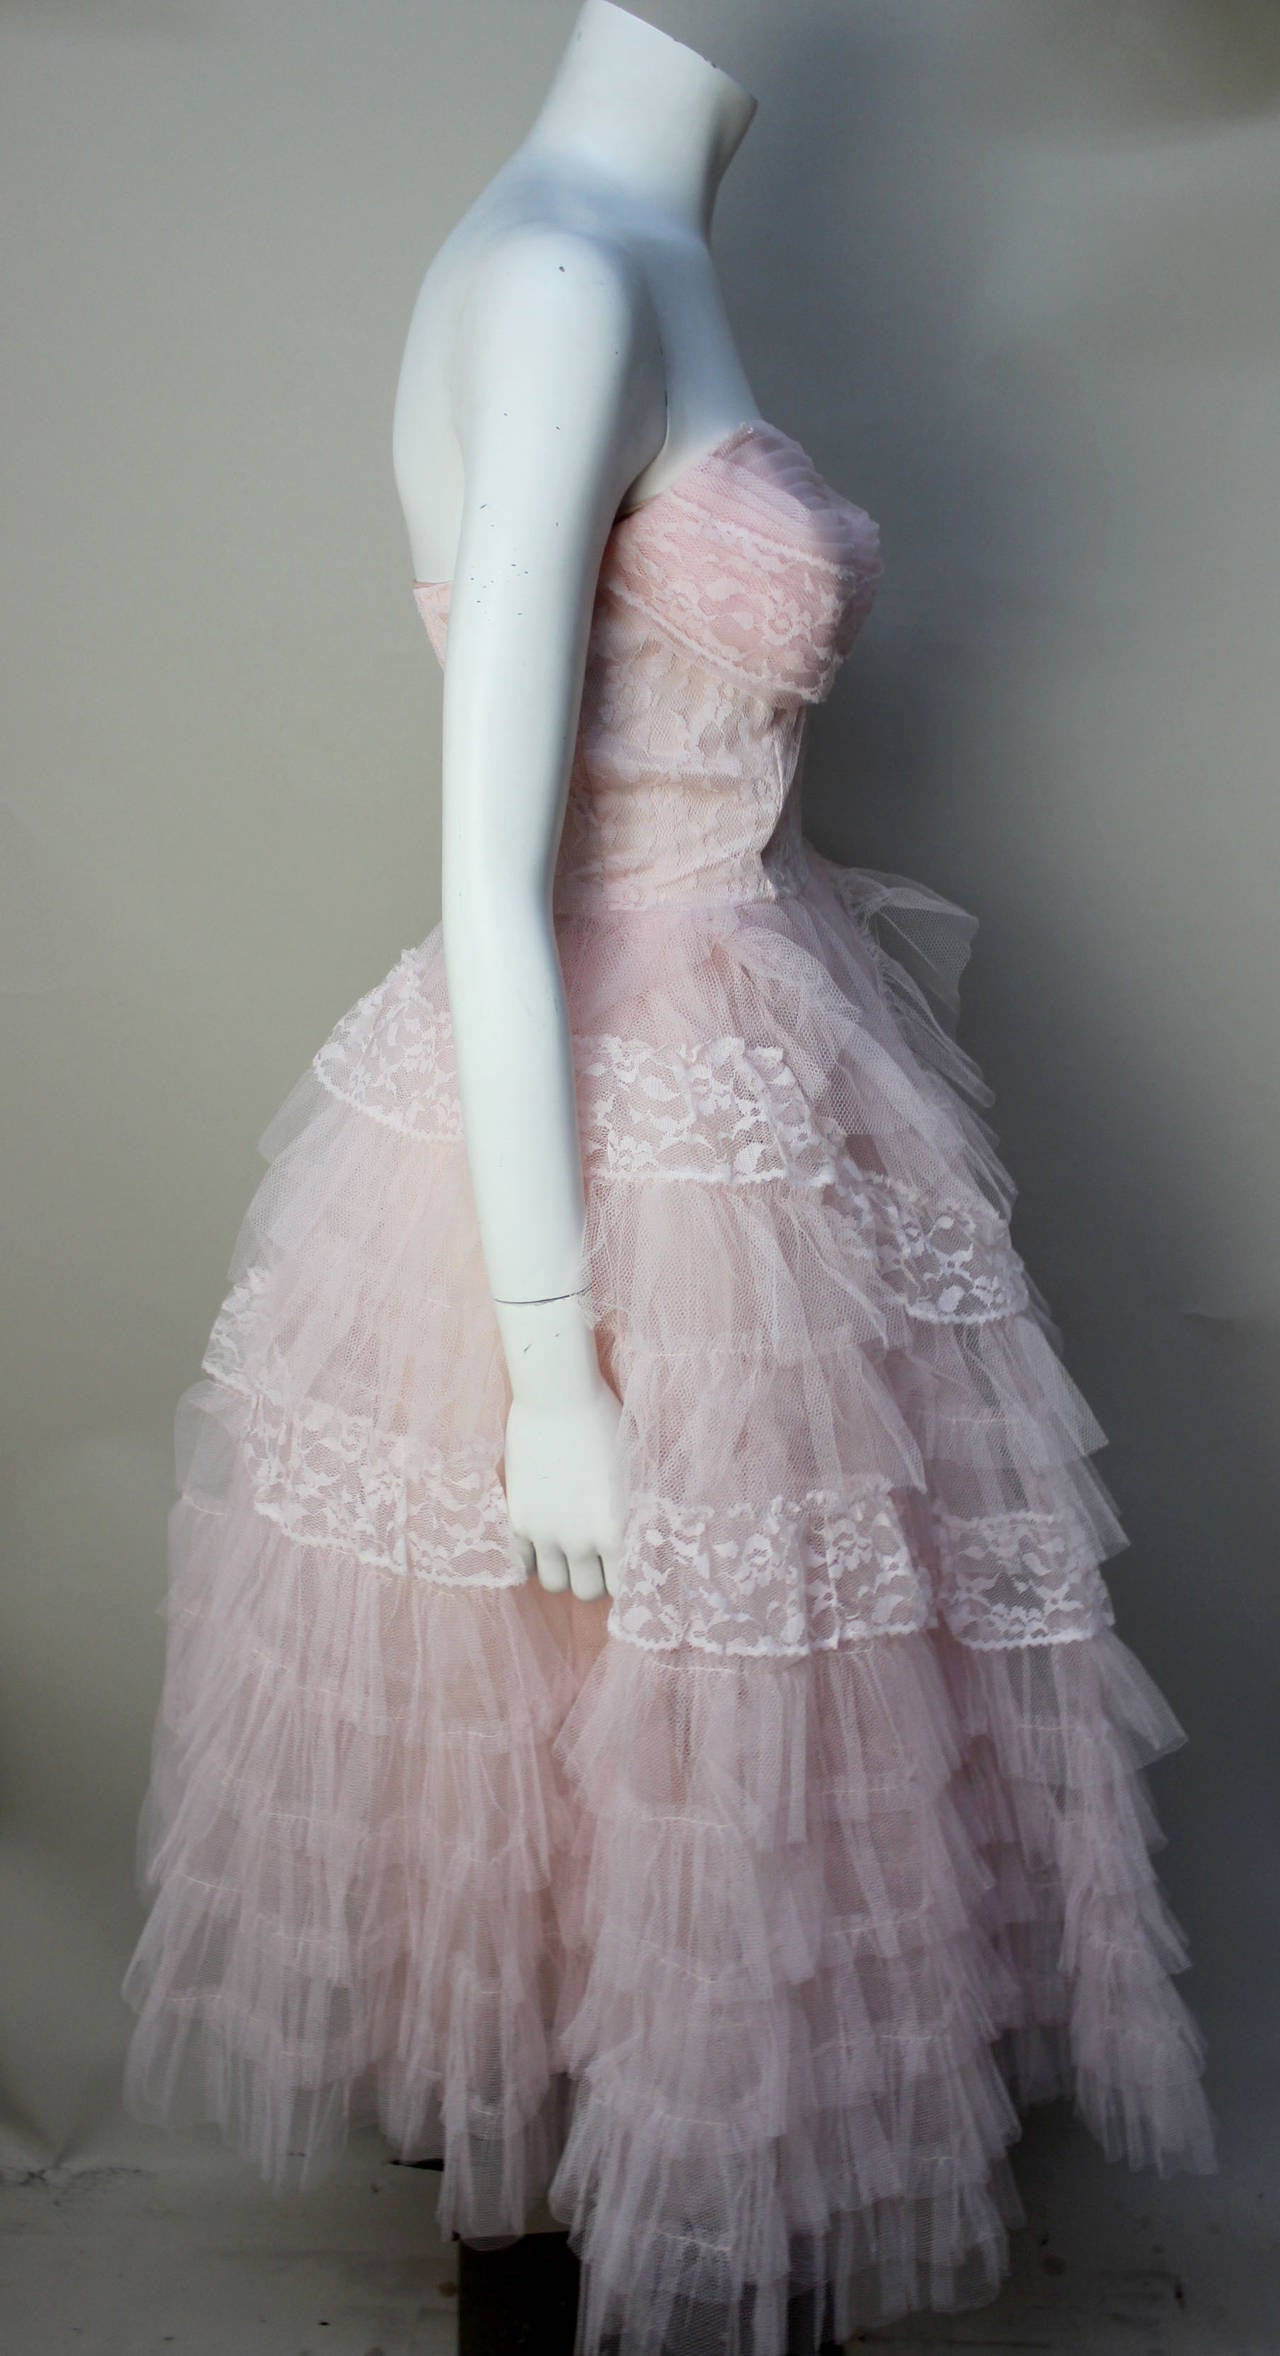 Stunning Never Worn 1950s Pink Tulle Evening Dress with Lace Bolero 4